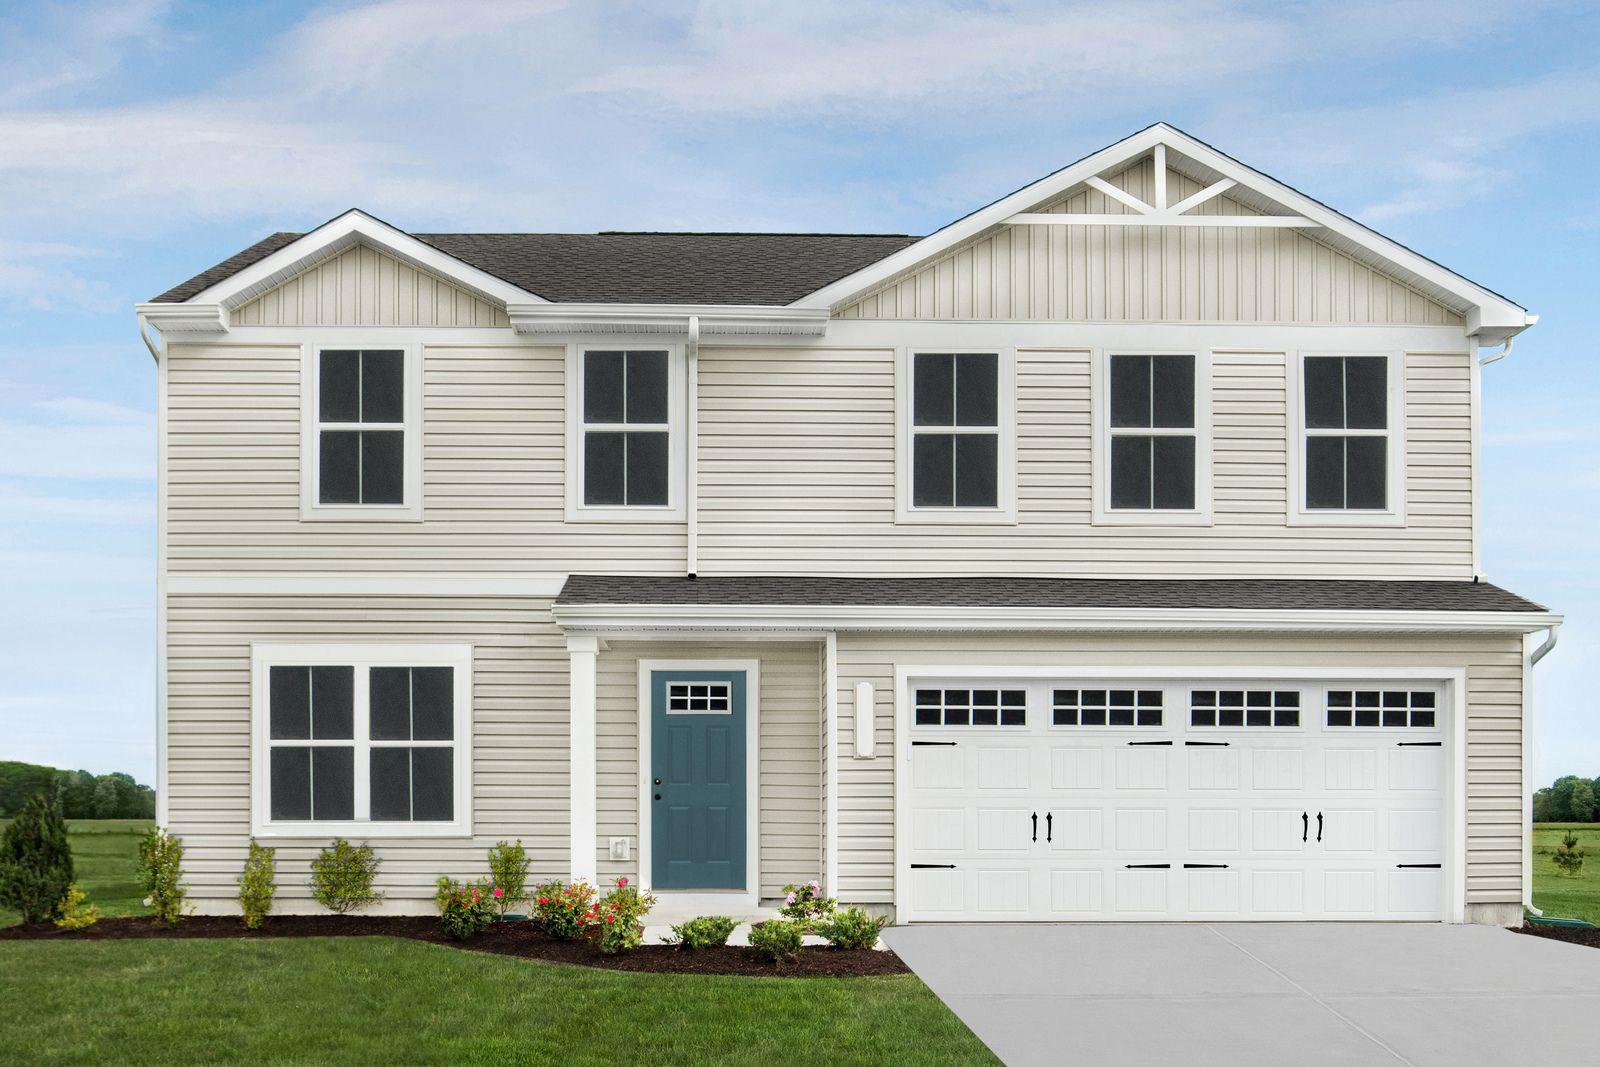 Concord Springs - New Homes in White House:Own a new home with all appliances included, a spacious backyard, plus choose your own finishes. Just 2 miles to I-65.Click here to schedule your visit today!